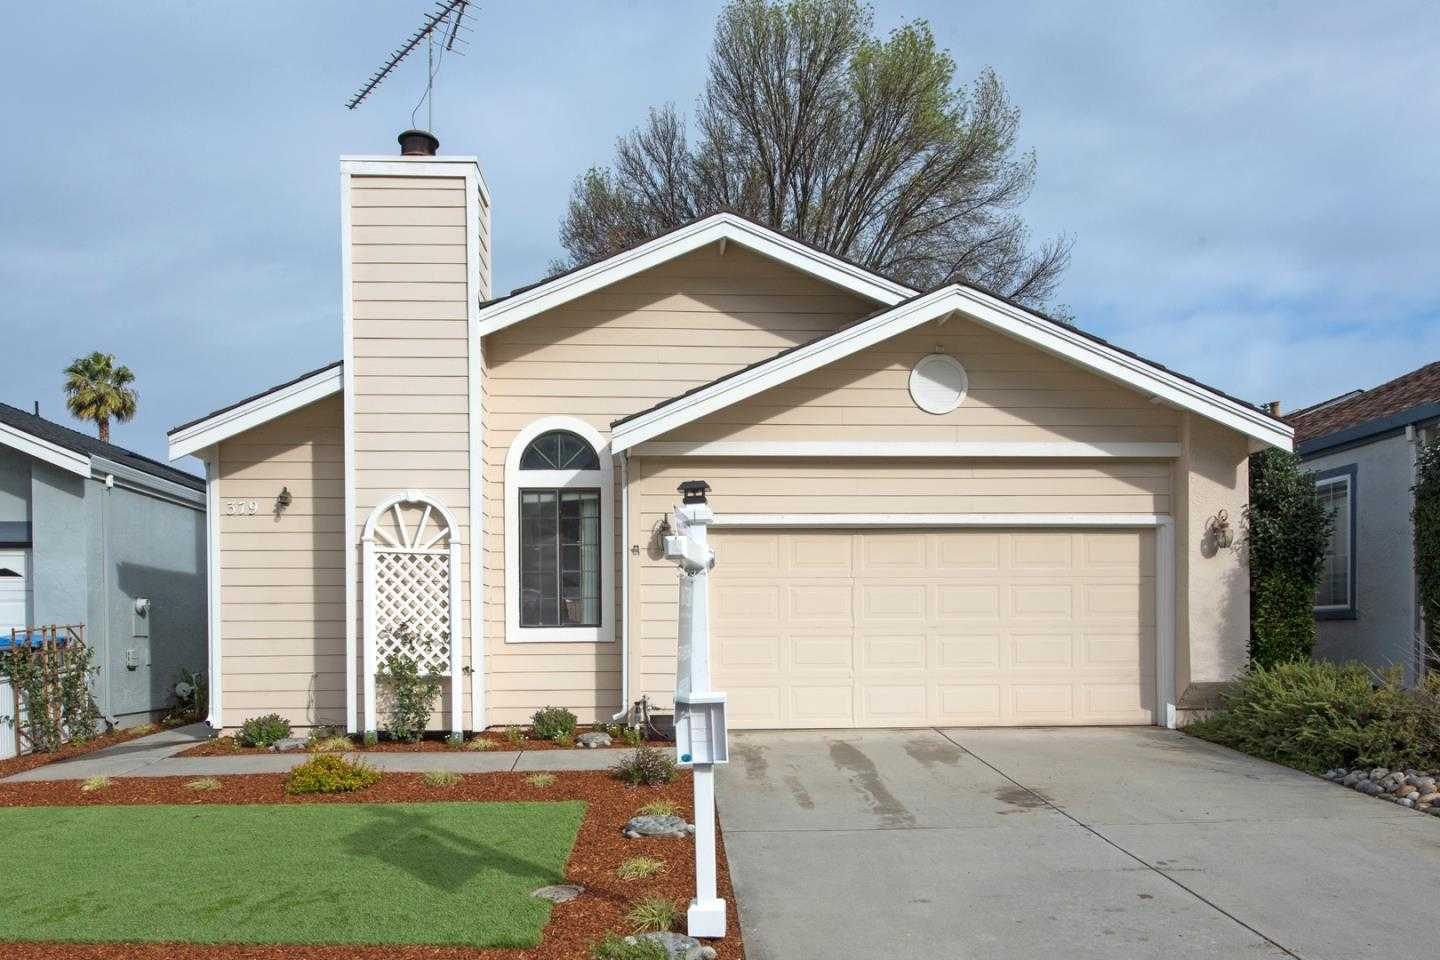 $849,000 - 3Br/2Ba -  for Sale in San Jose